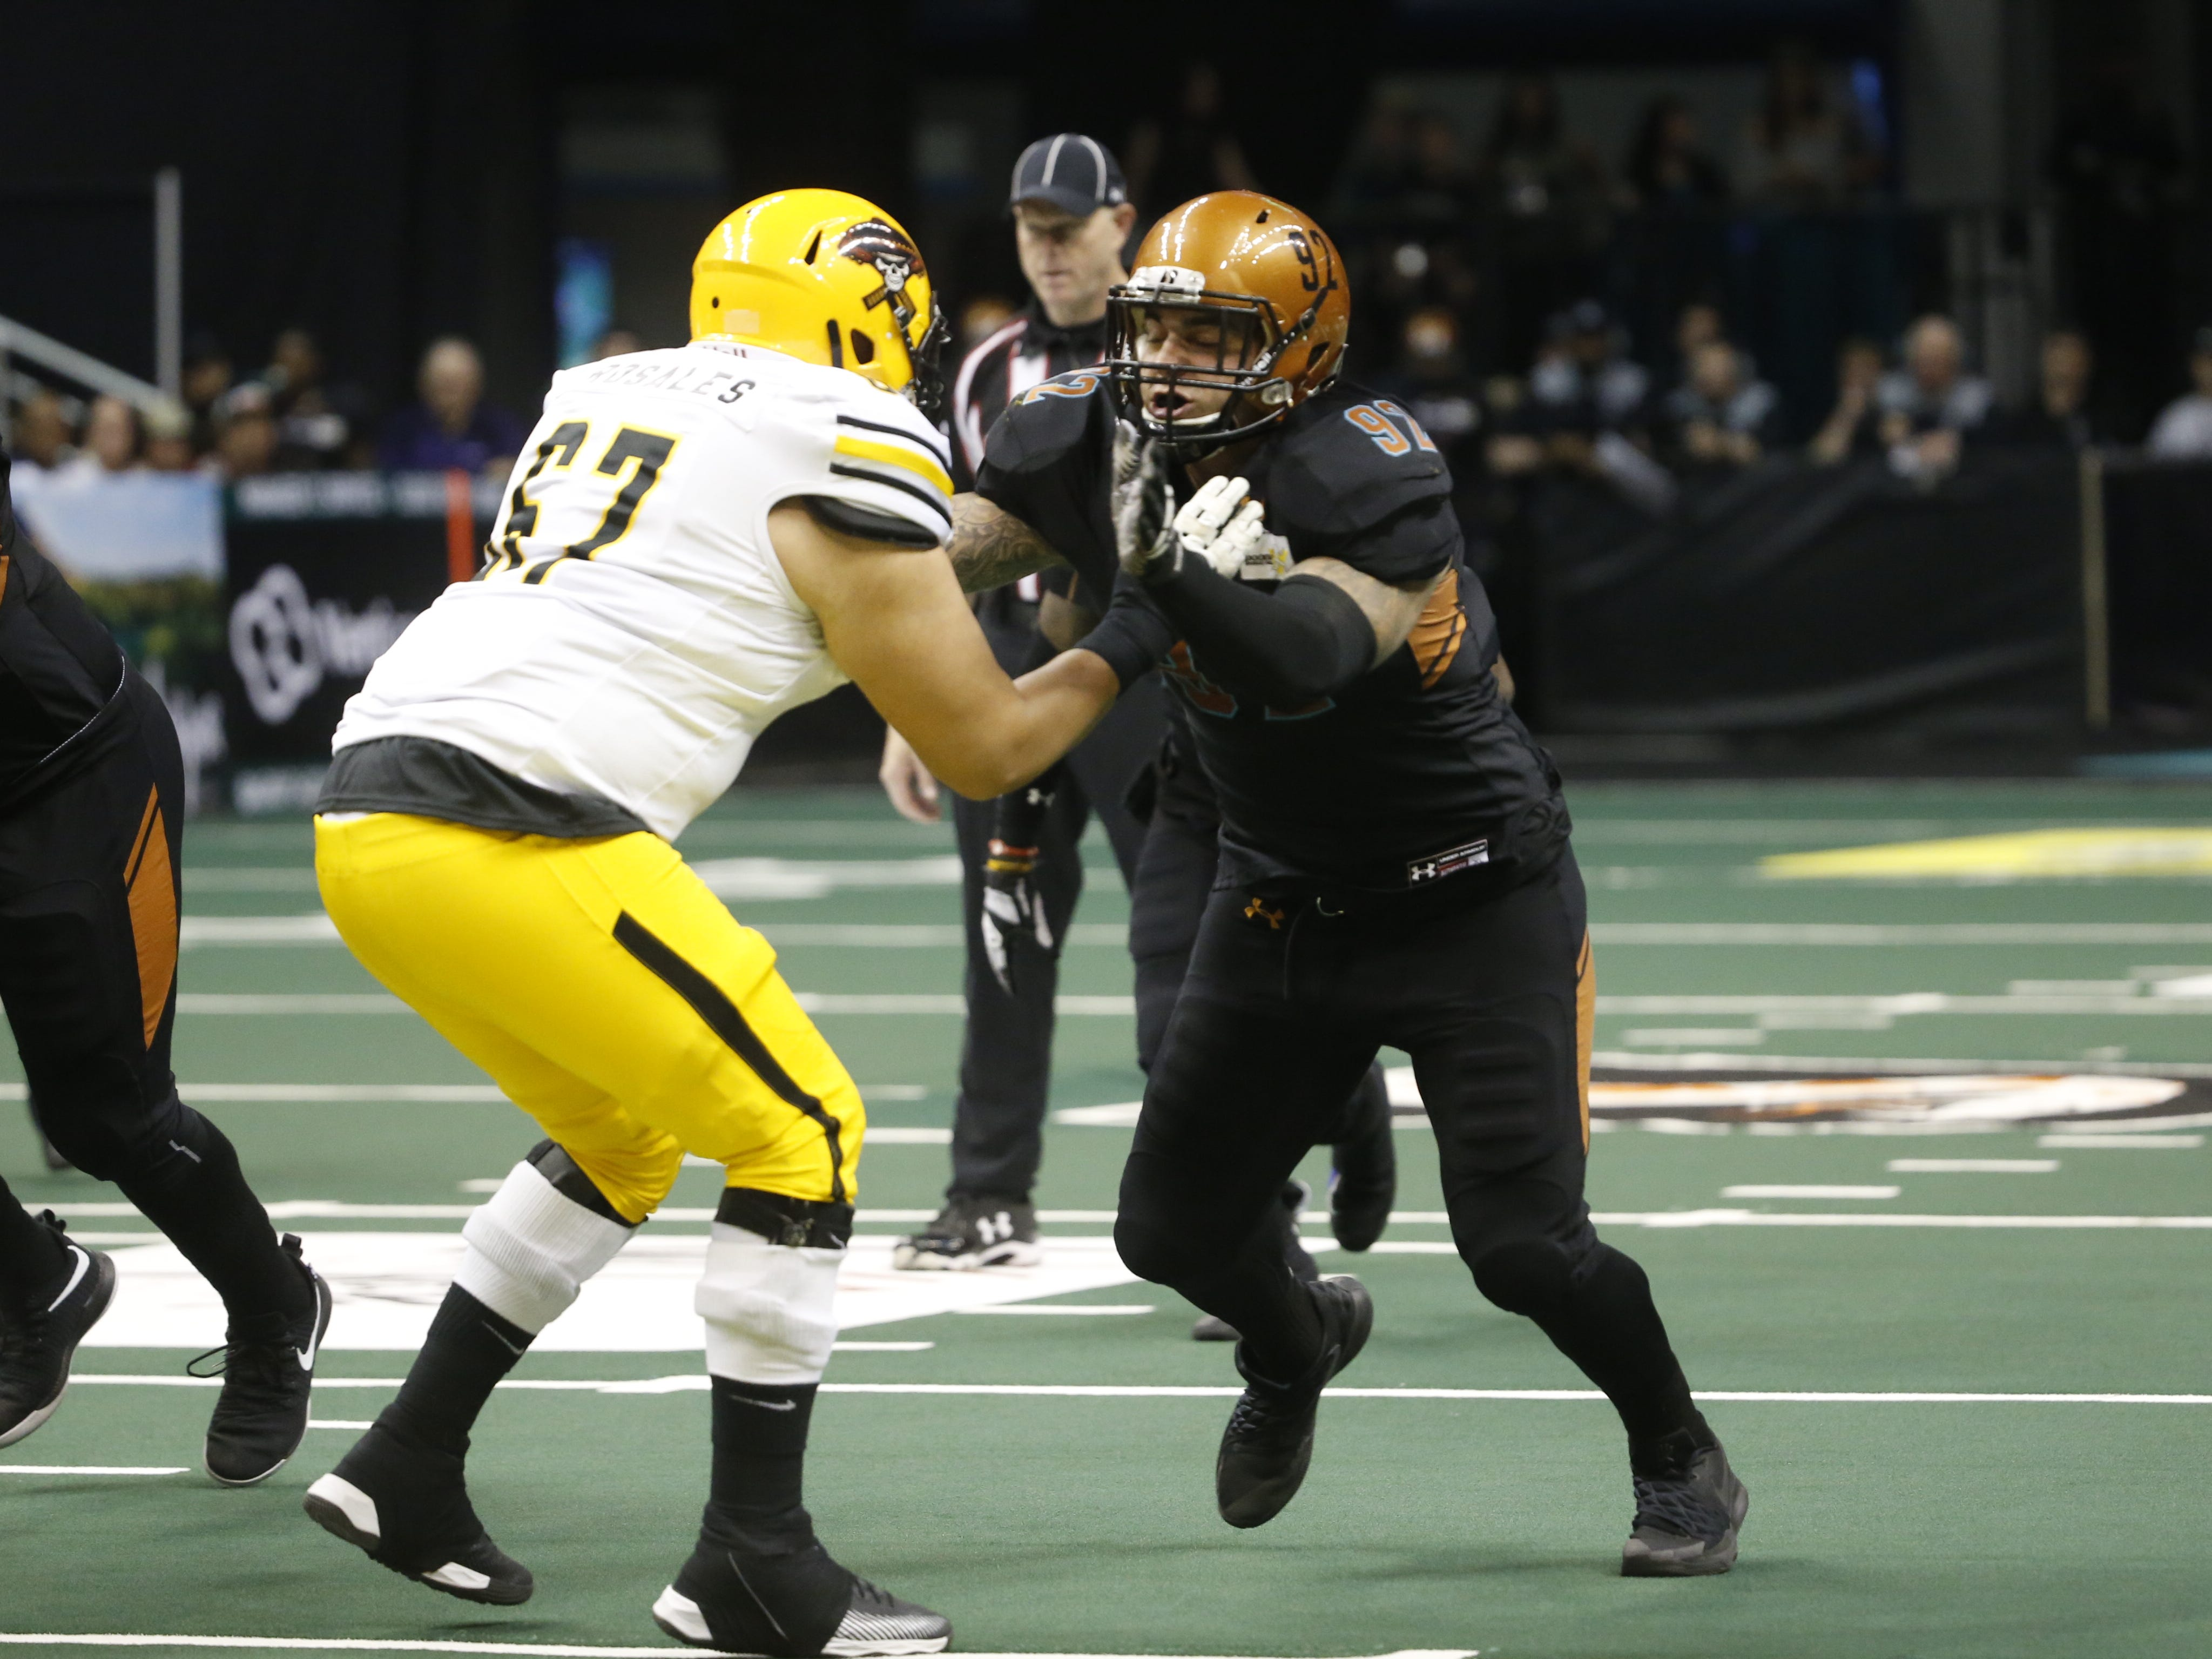 Rattlers' Nikolaus D'Avanza (92) rushes the passer against Sugar Skulls' Antonio Rosales (67) during the first half at Talking Stick Resort Arena in Phoenix, Ariz. on March 16, 2019.